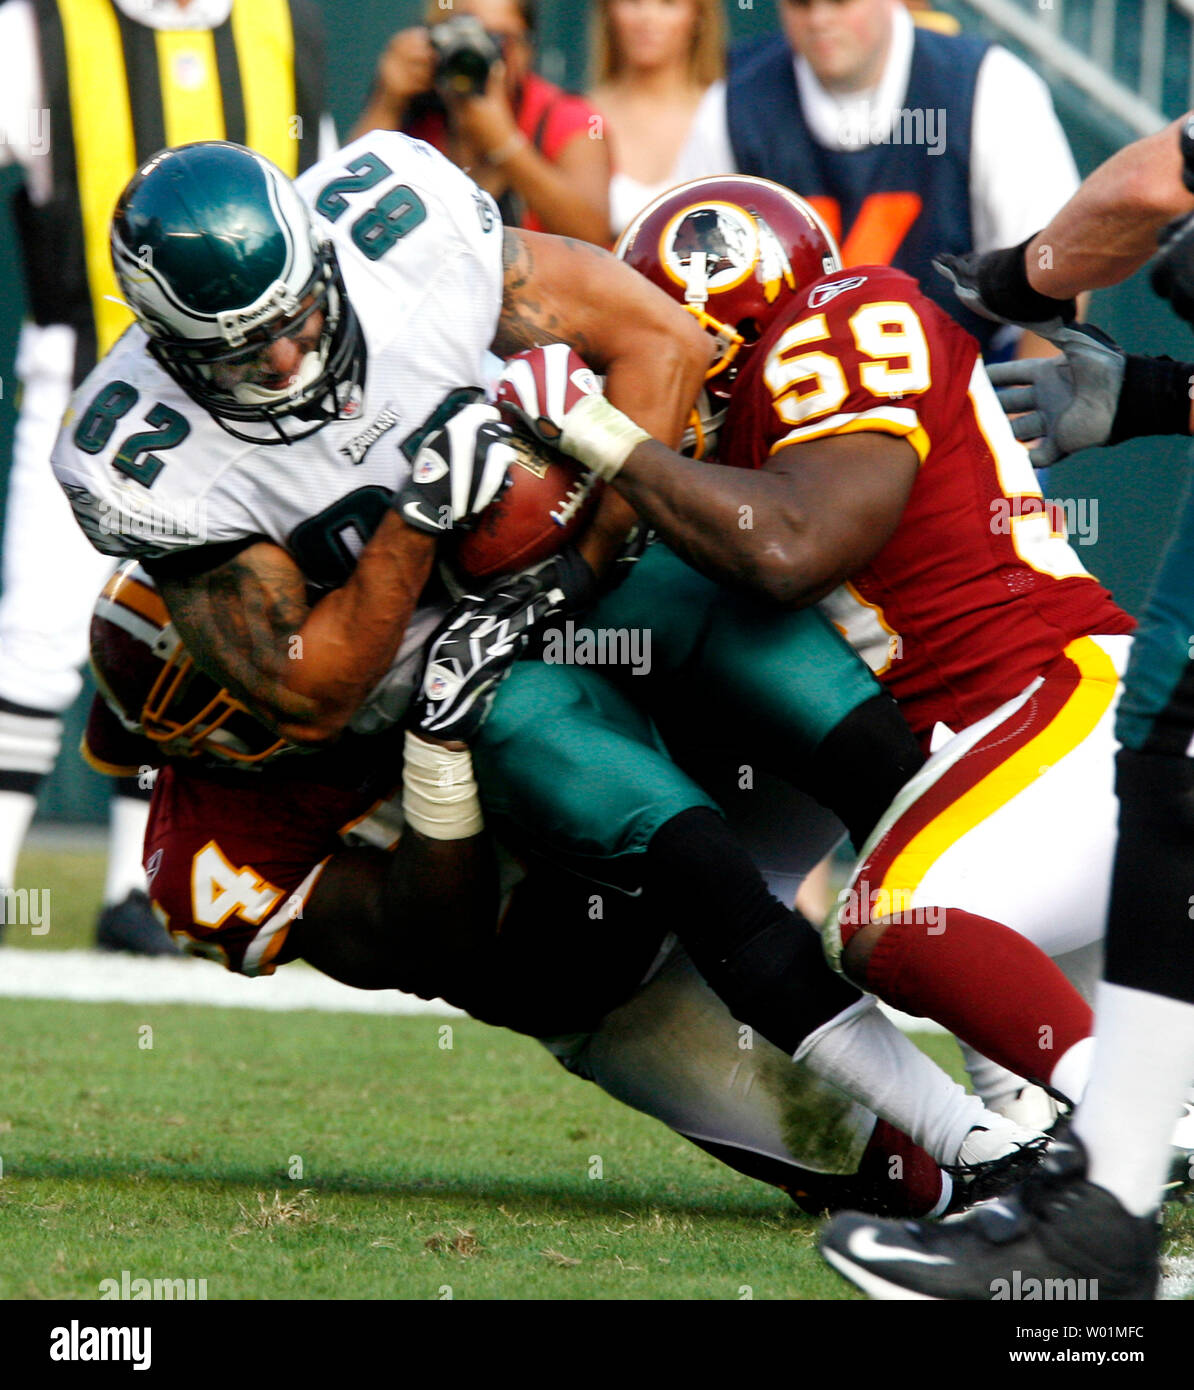 Philadelphia Eagles tight end L.J. Smith (82) gains 7 yards against Washington Redskins linebacker H. B. Blades and London Fletcher (59) during the fourth quarter at Lincoln Financial Field in in Philadelphia on October 5, 2008. Washington defeated Philadelphia 23-17. (UPI Photo/John Anderson) - Stock Image